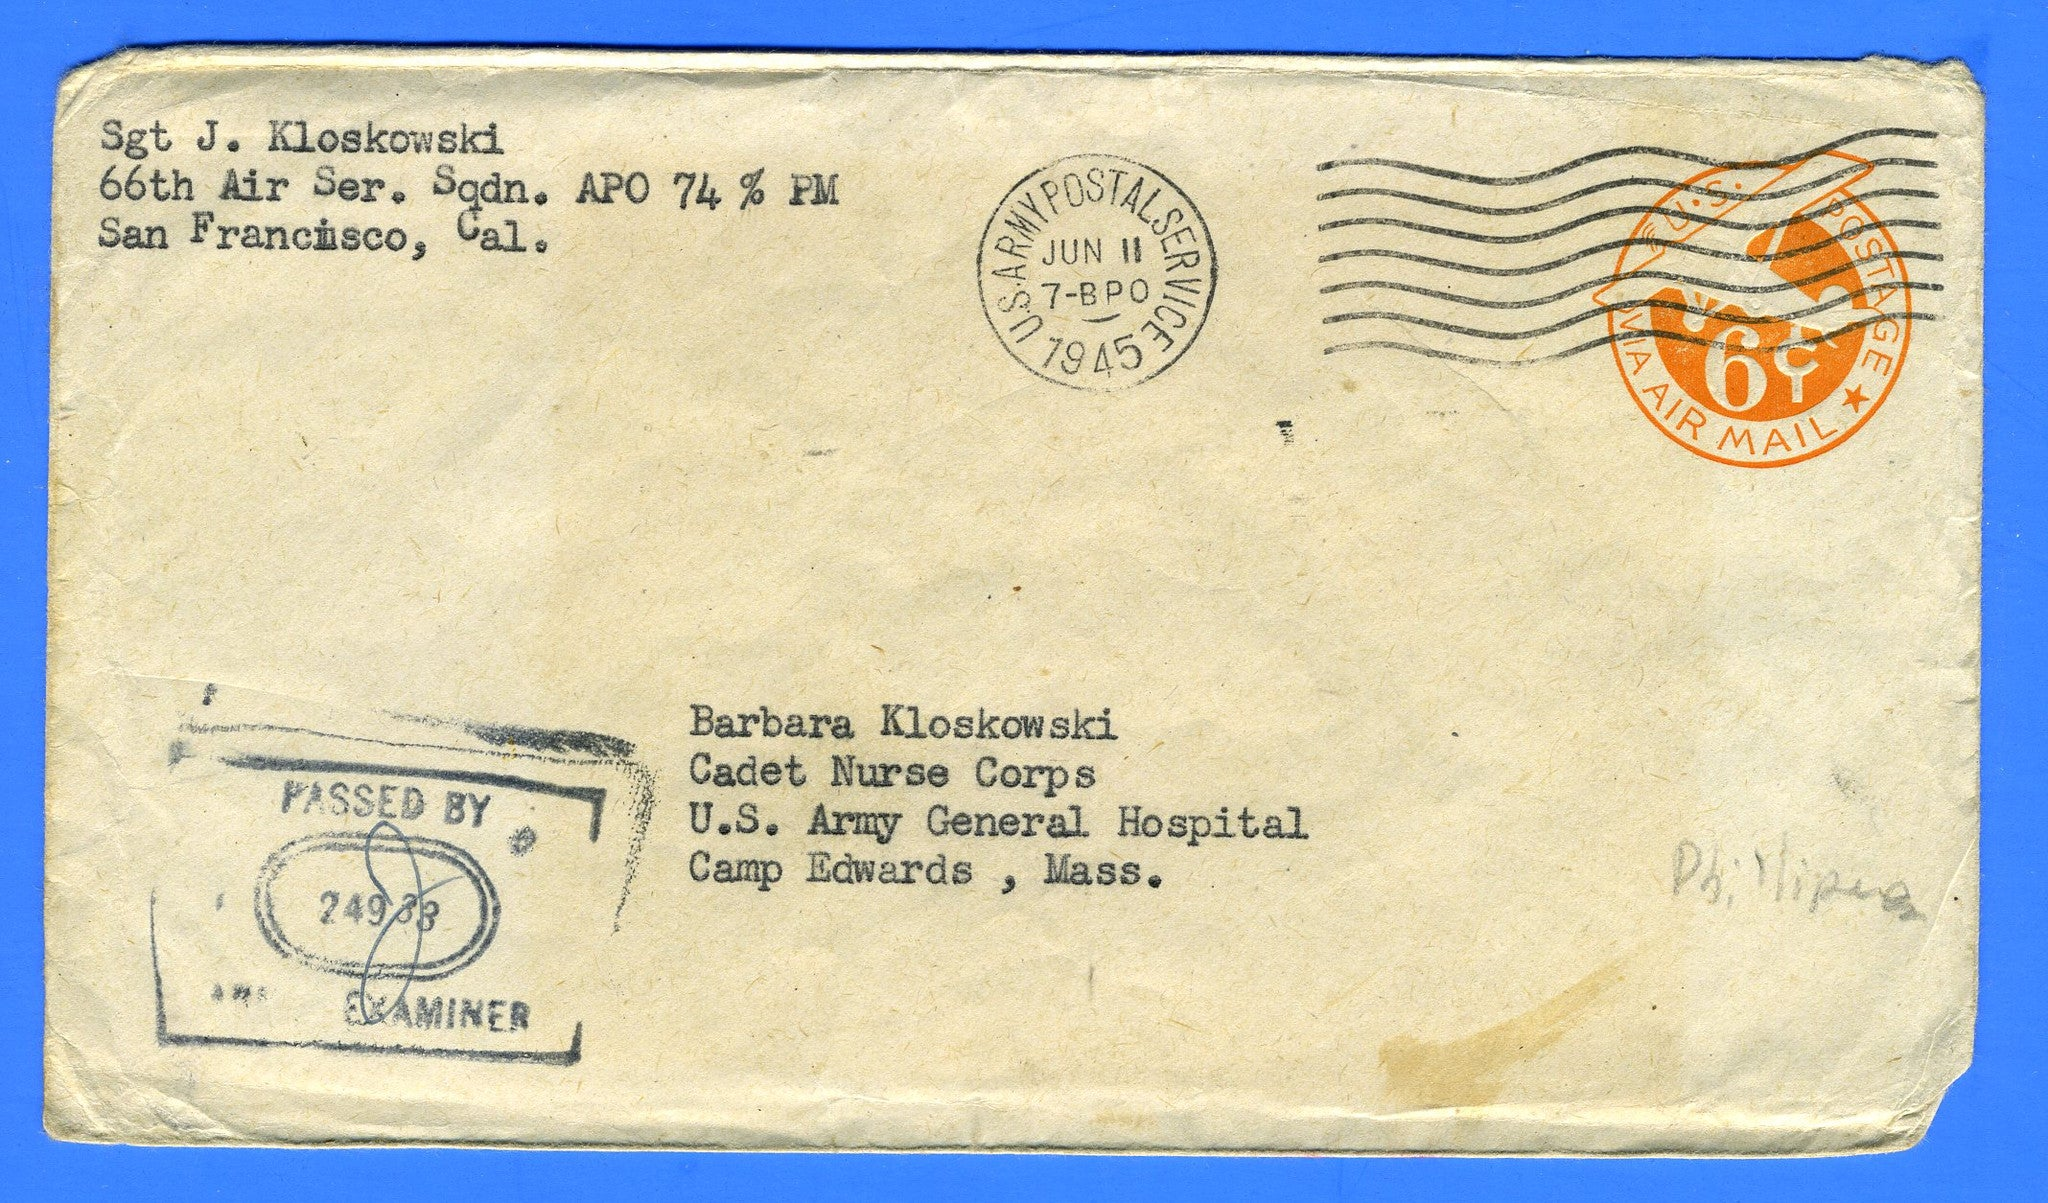 Soldier's Censored Mail APO 74 Clark Field, Luzon, Philippines May 19, 1945